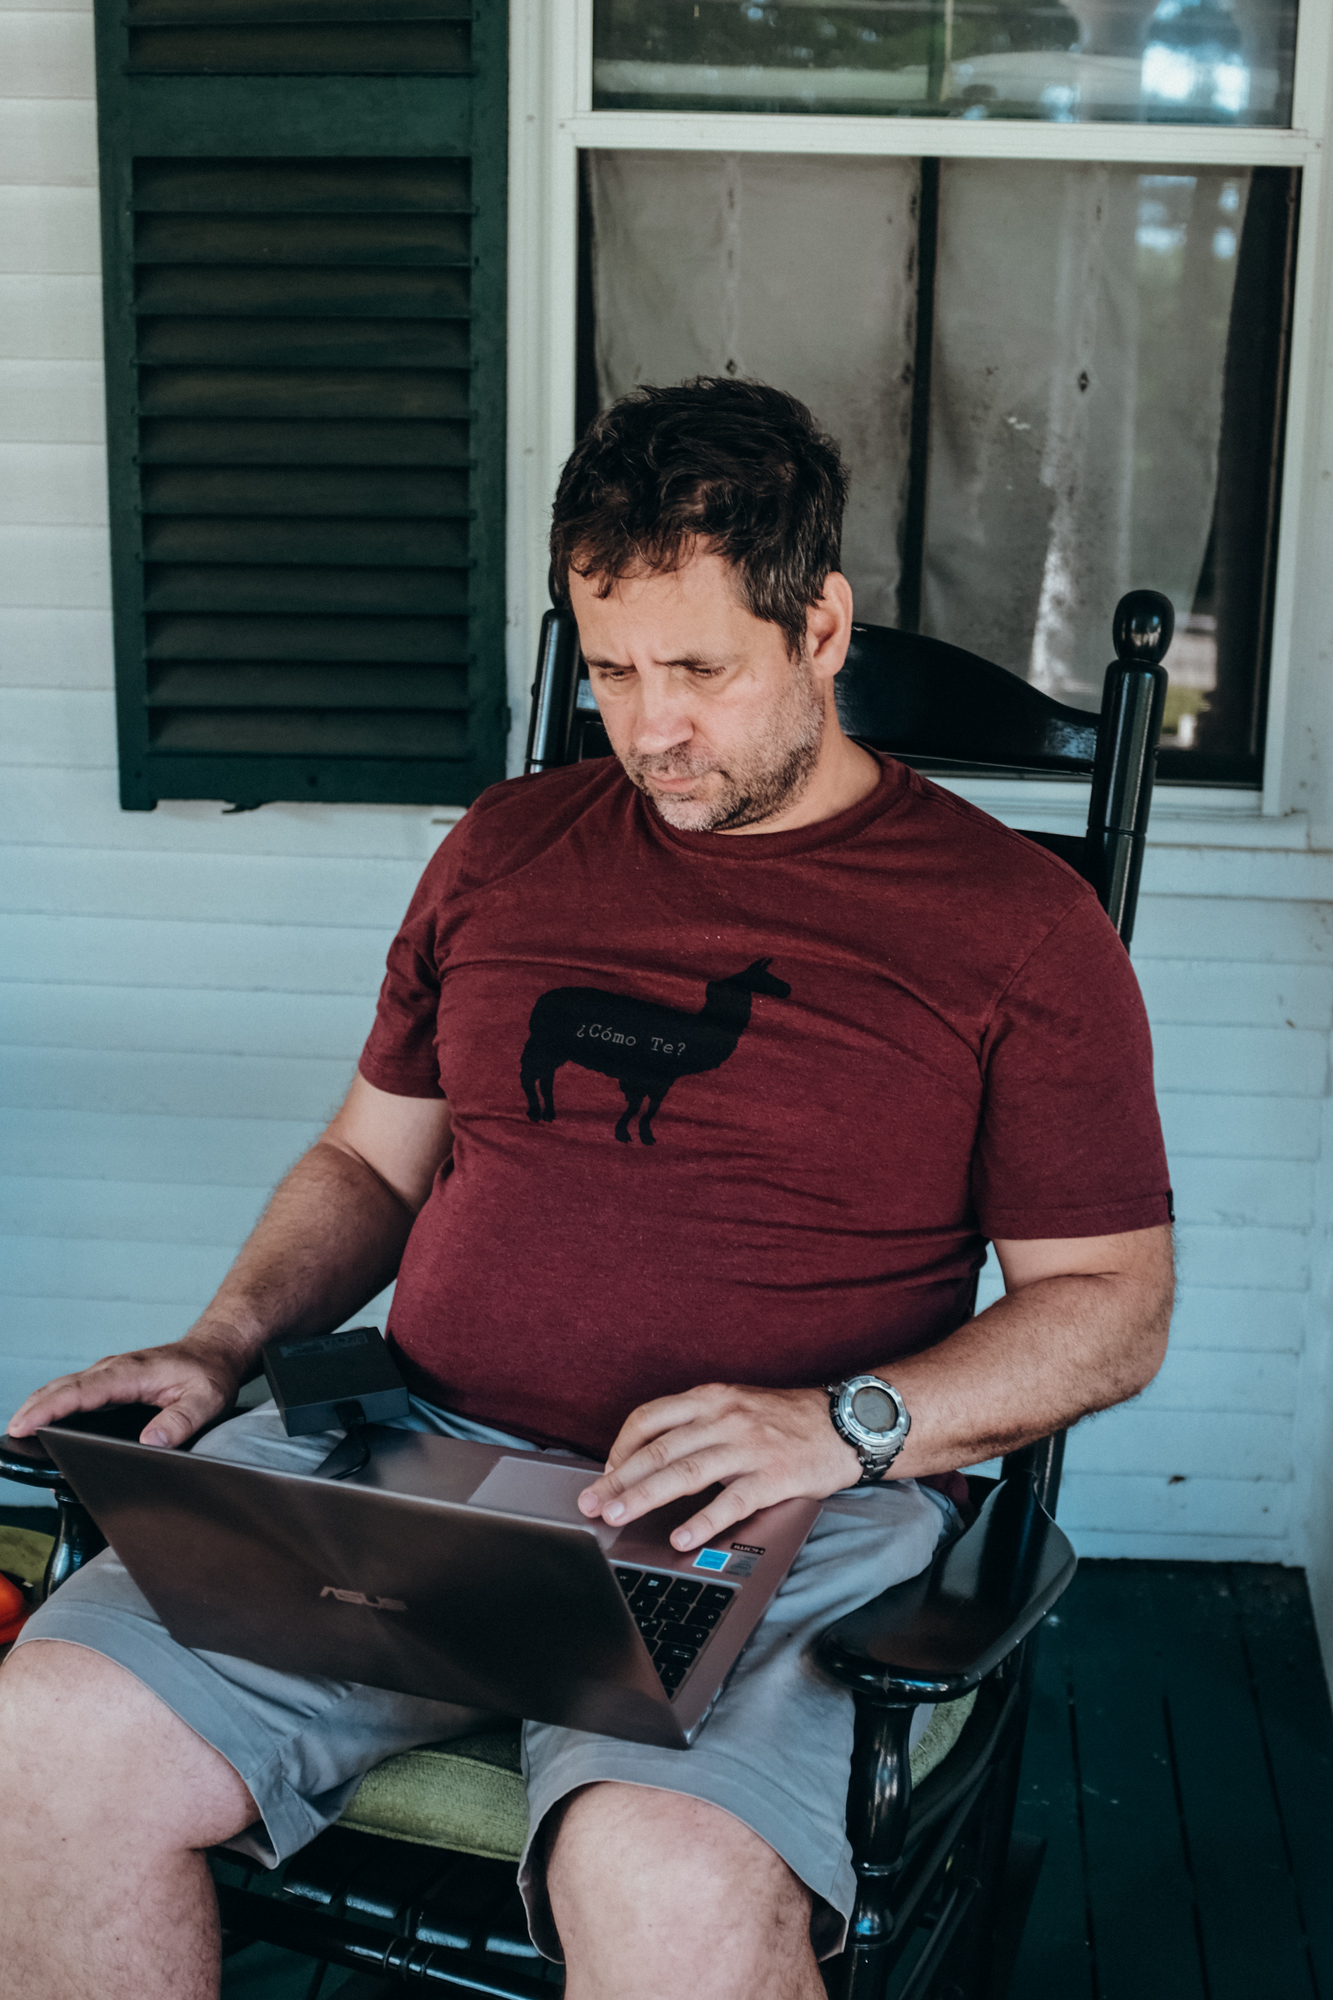 A man works on his computer in a rocking chair on a front porch in Jaffrey, New Hampshire.